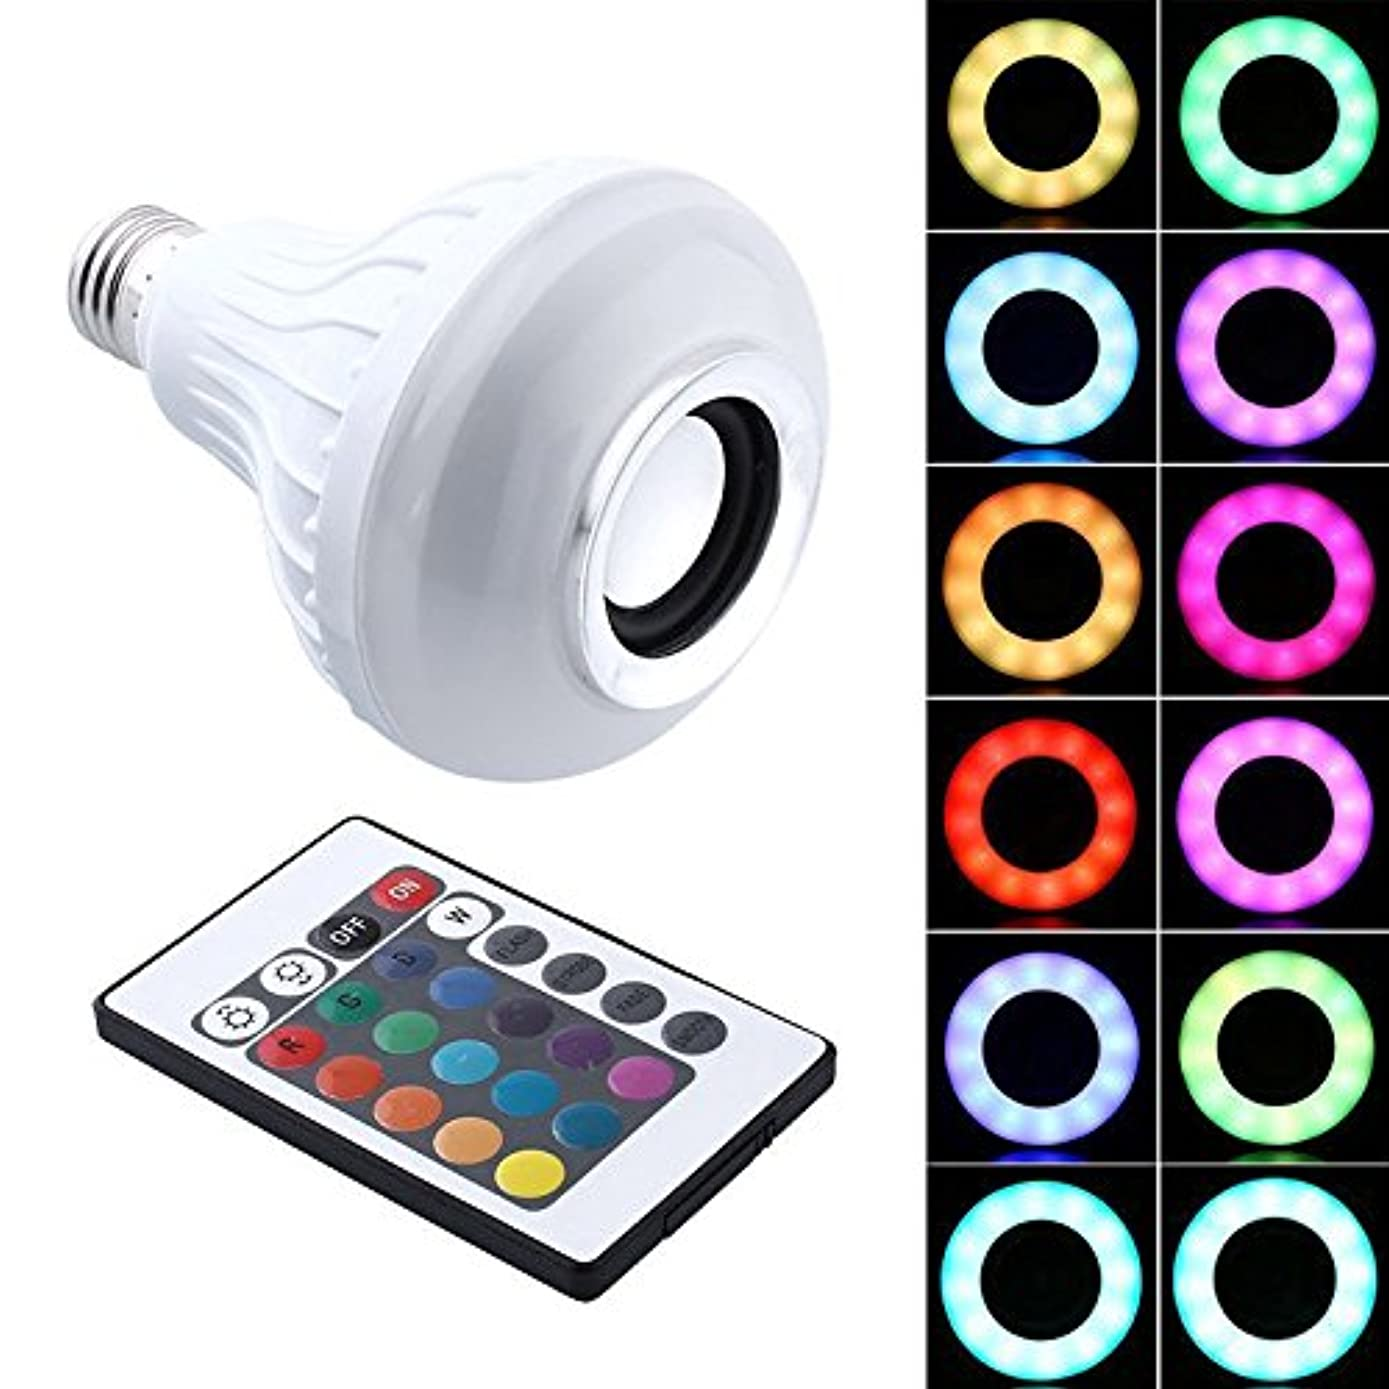 birl019 Speaker Bulb Light 12W E27 LED RGB Wireless Bluetooth Speaker Bulb Light Music Playing Lamp+Remote Controller